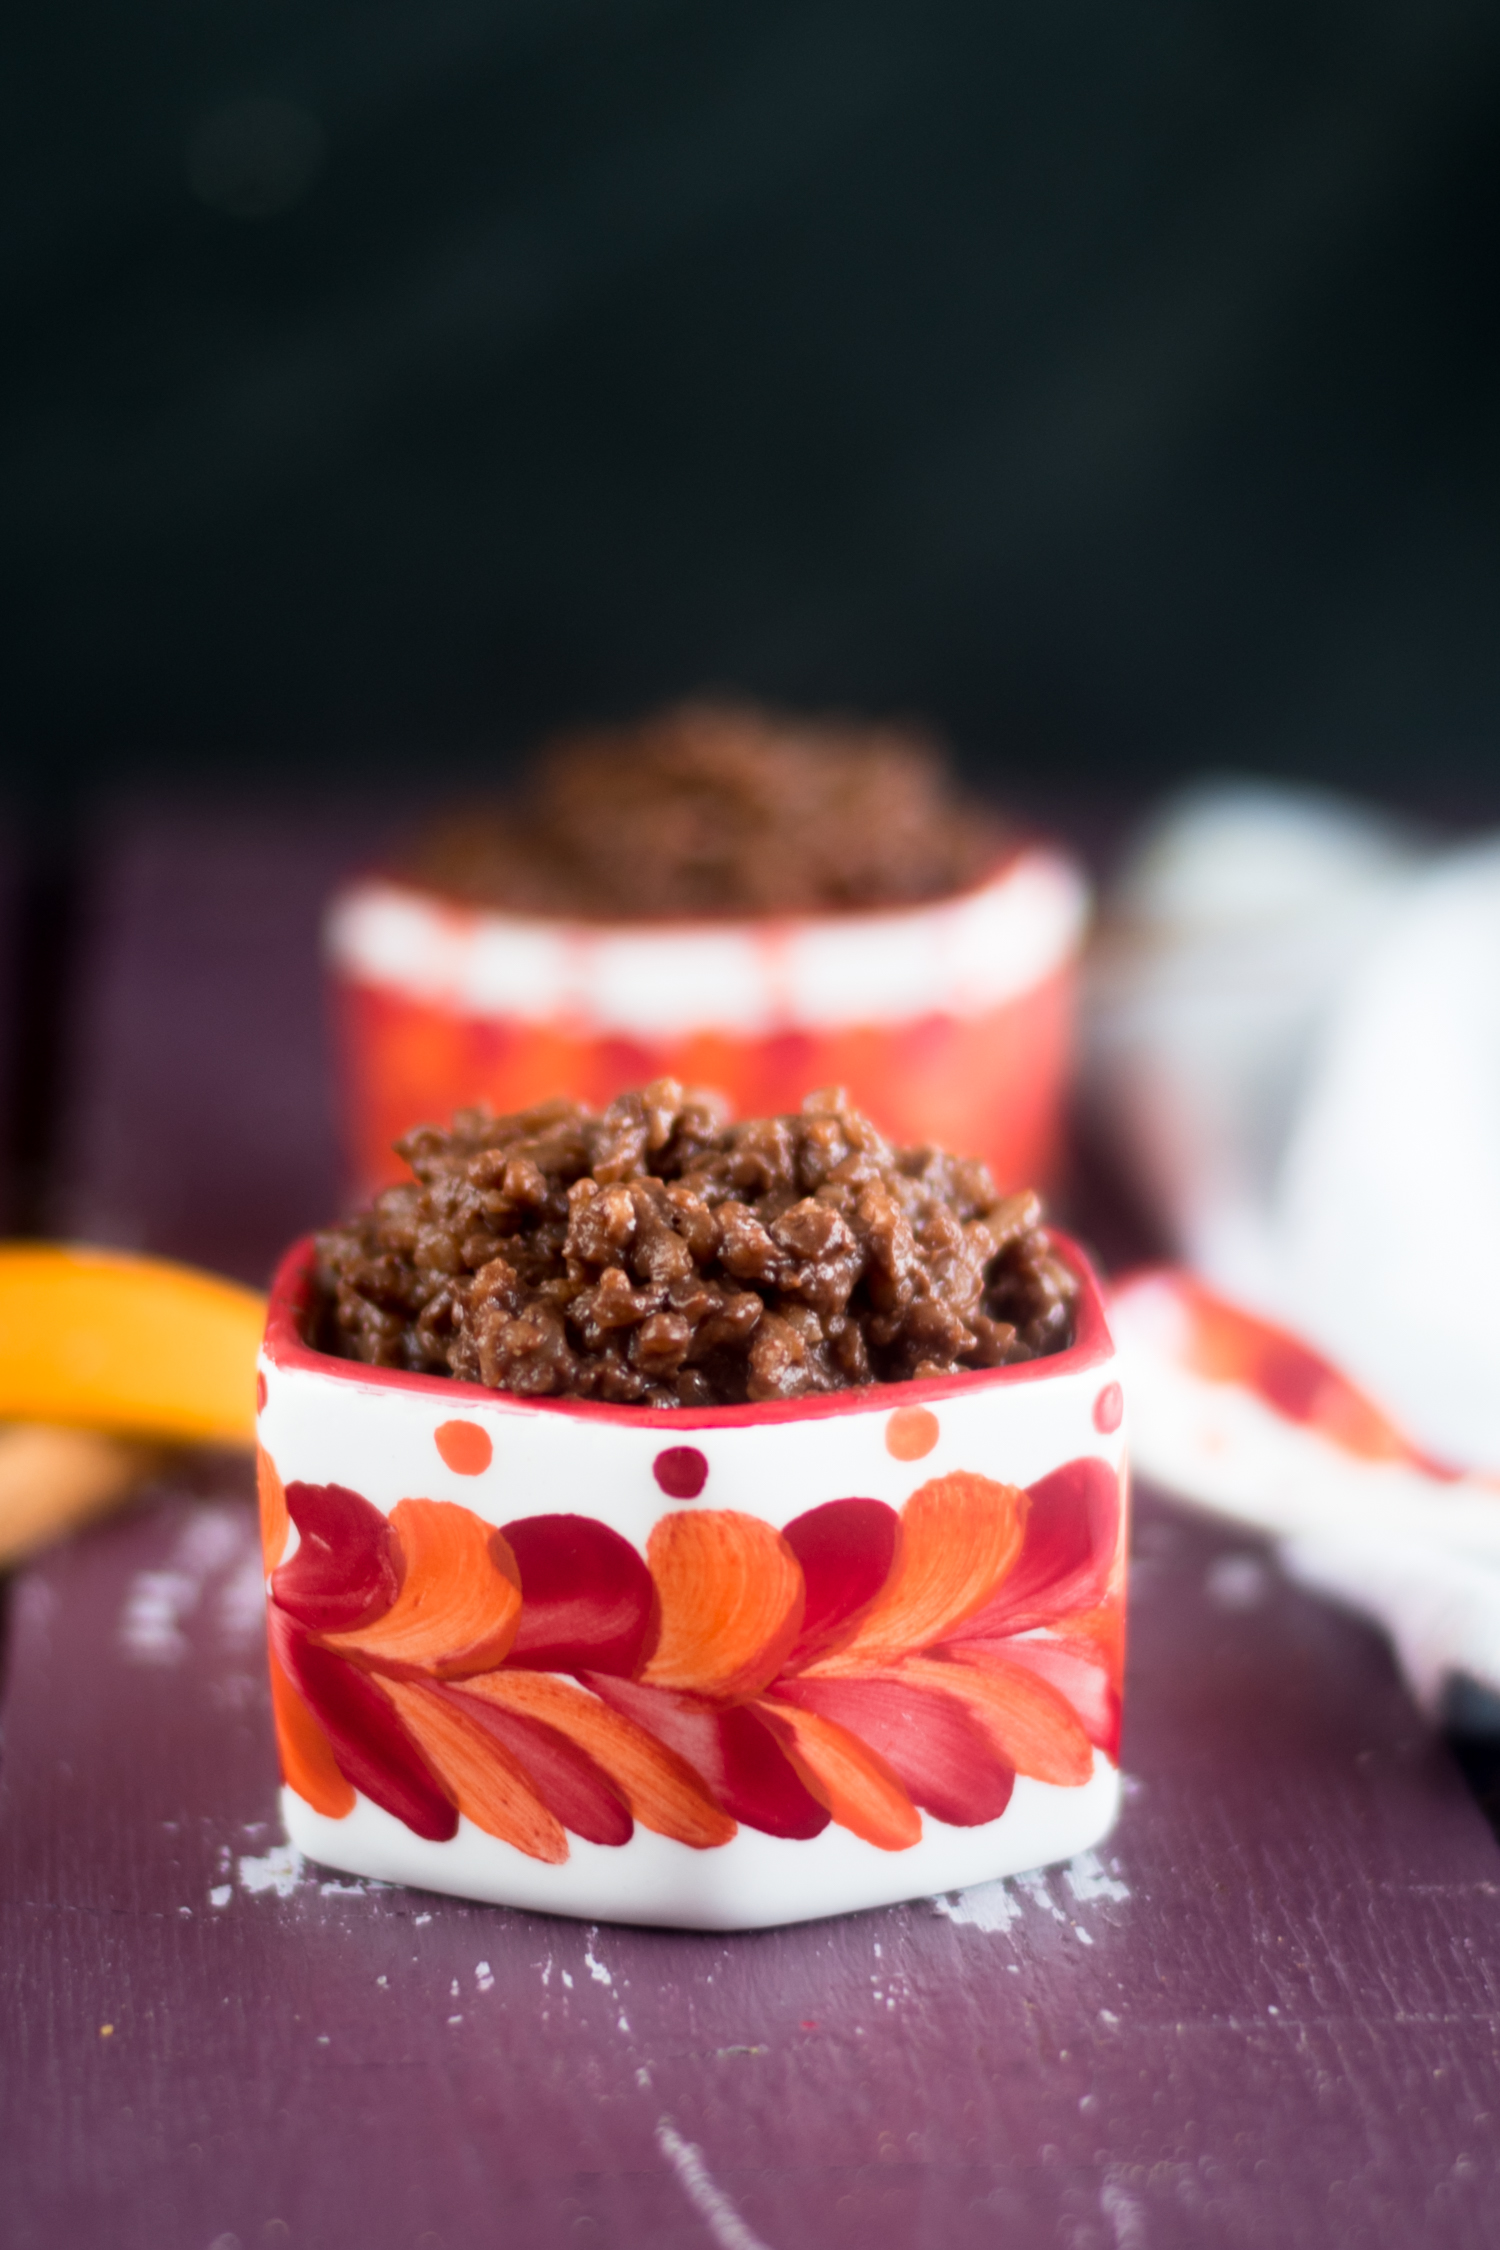 A chocolatey twist on traditional arroz con leche. This creamy rice pudding is infused with two types of chocolate. This is great for dessert or a sweet breakfast treat. #vegan #dessert #Mexican #glutenfree #recipes #chocolate #easyrecipes